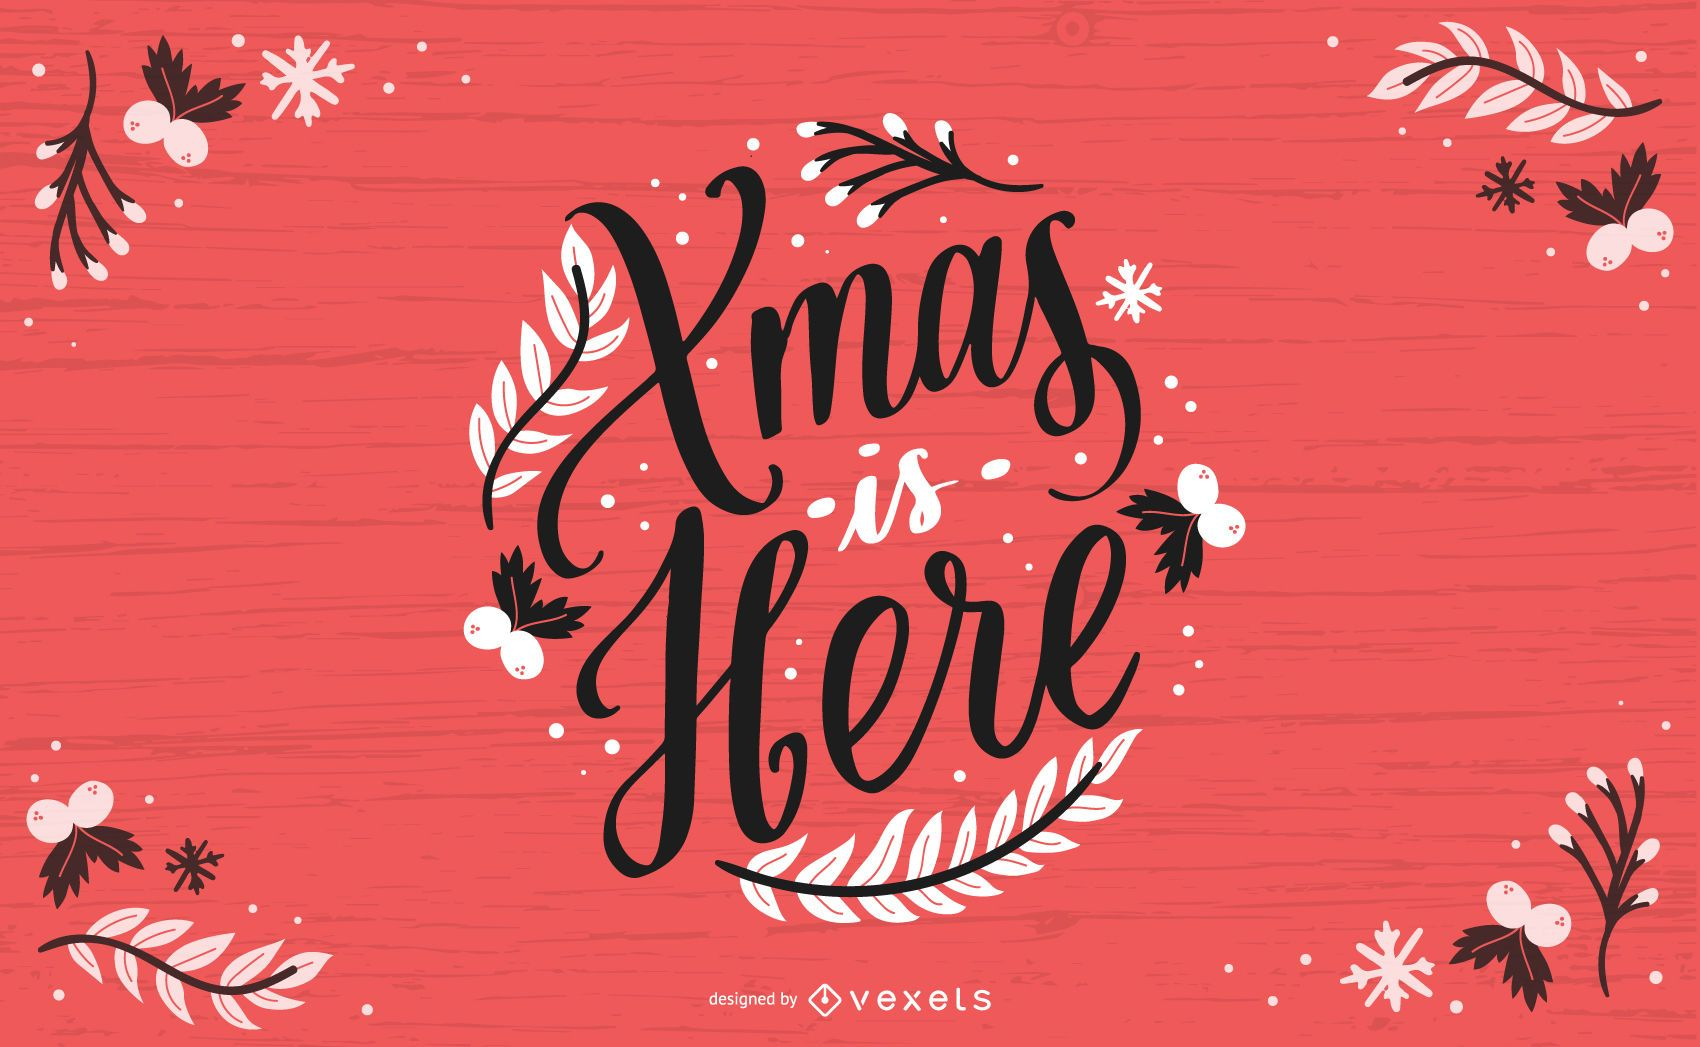 Xmas is here lettering design